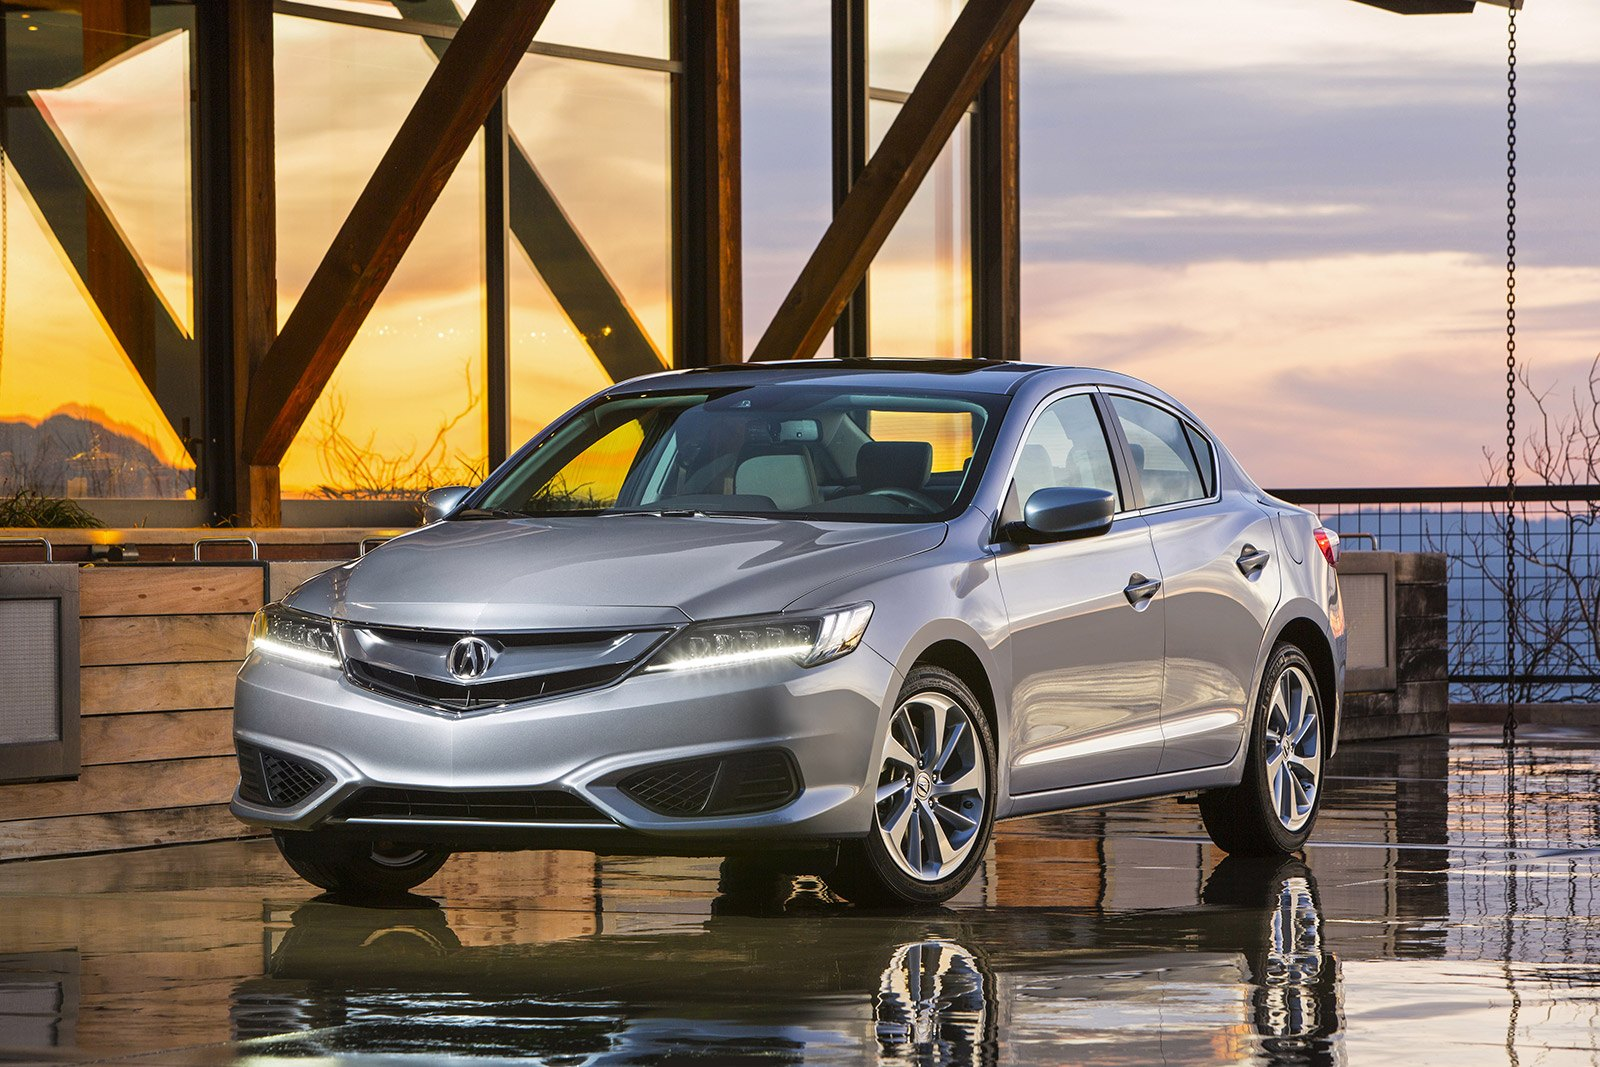 Topping The Small Premium Car Segment Is Acura Ilx Which Earned Top Ratings For Overall Quality But Only Has About Average Reliability